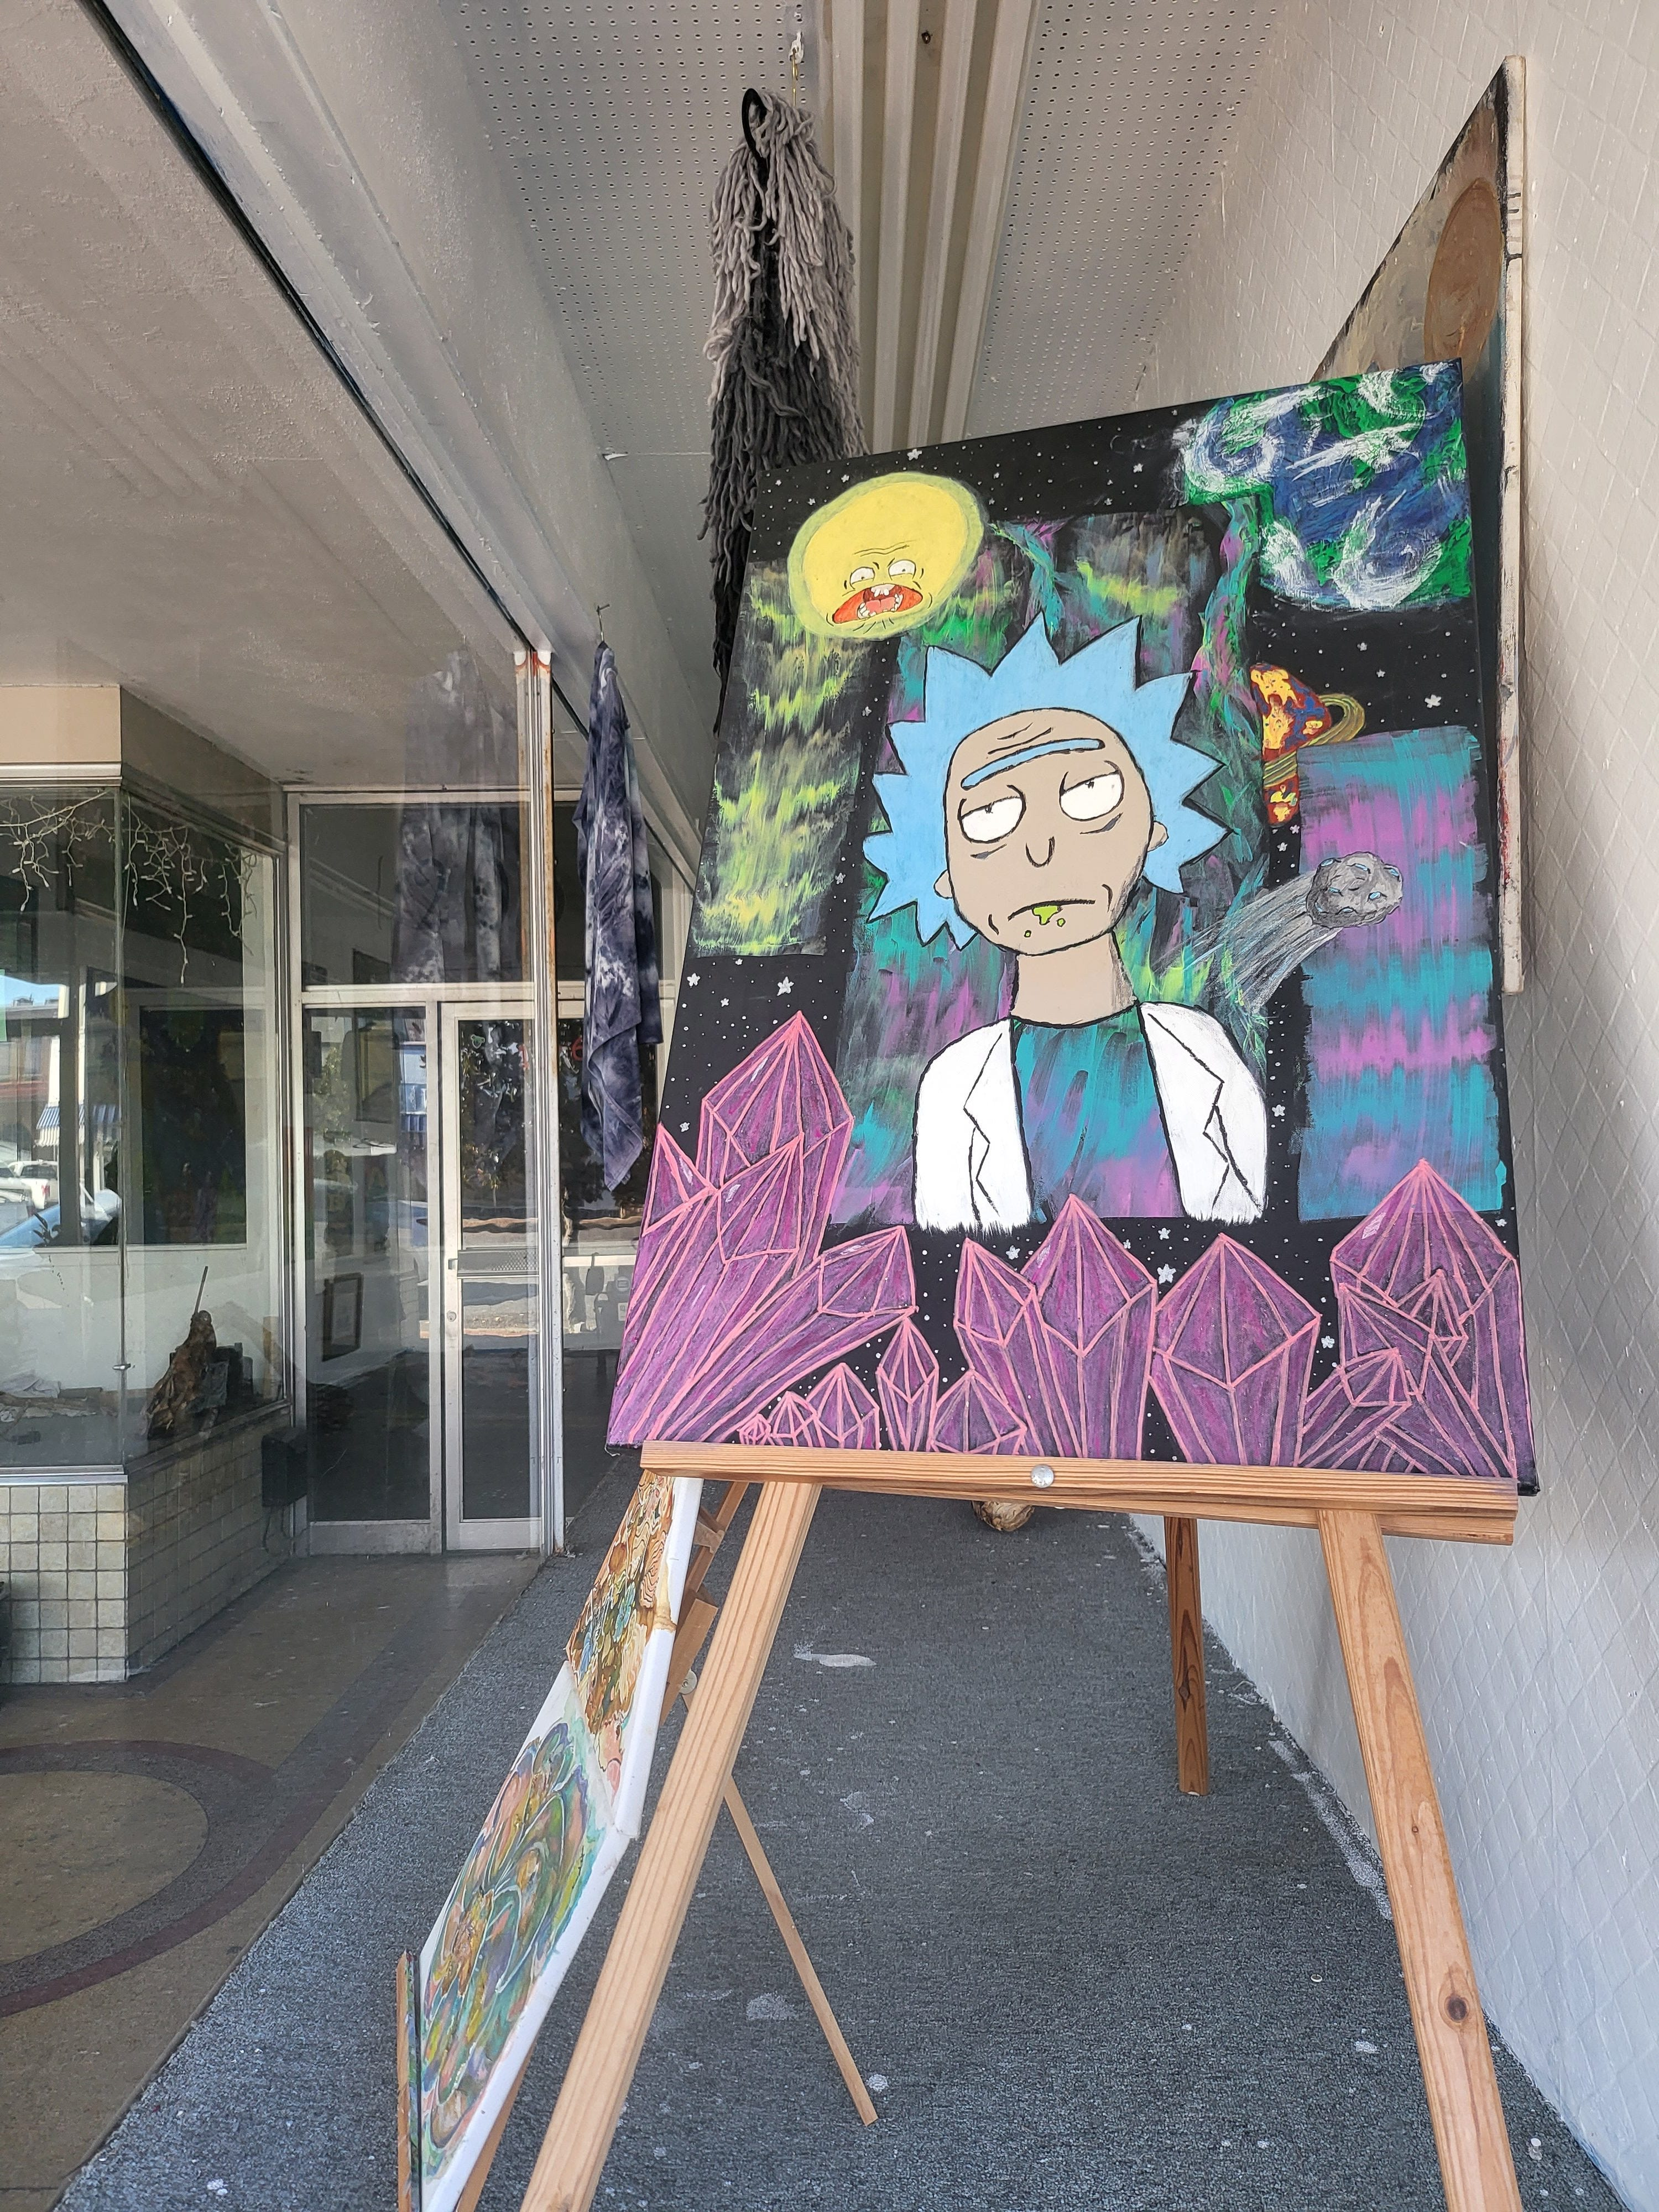 Rick and Morty painting in a shop window